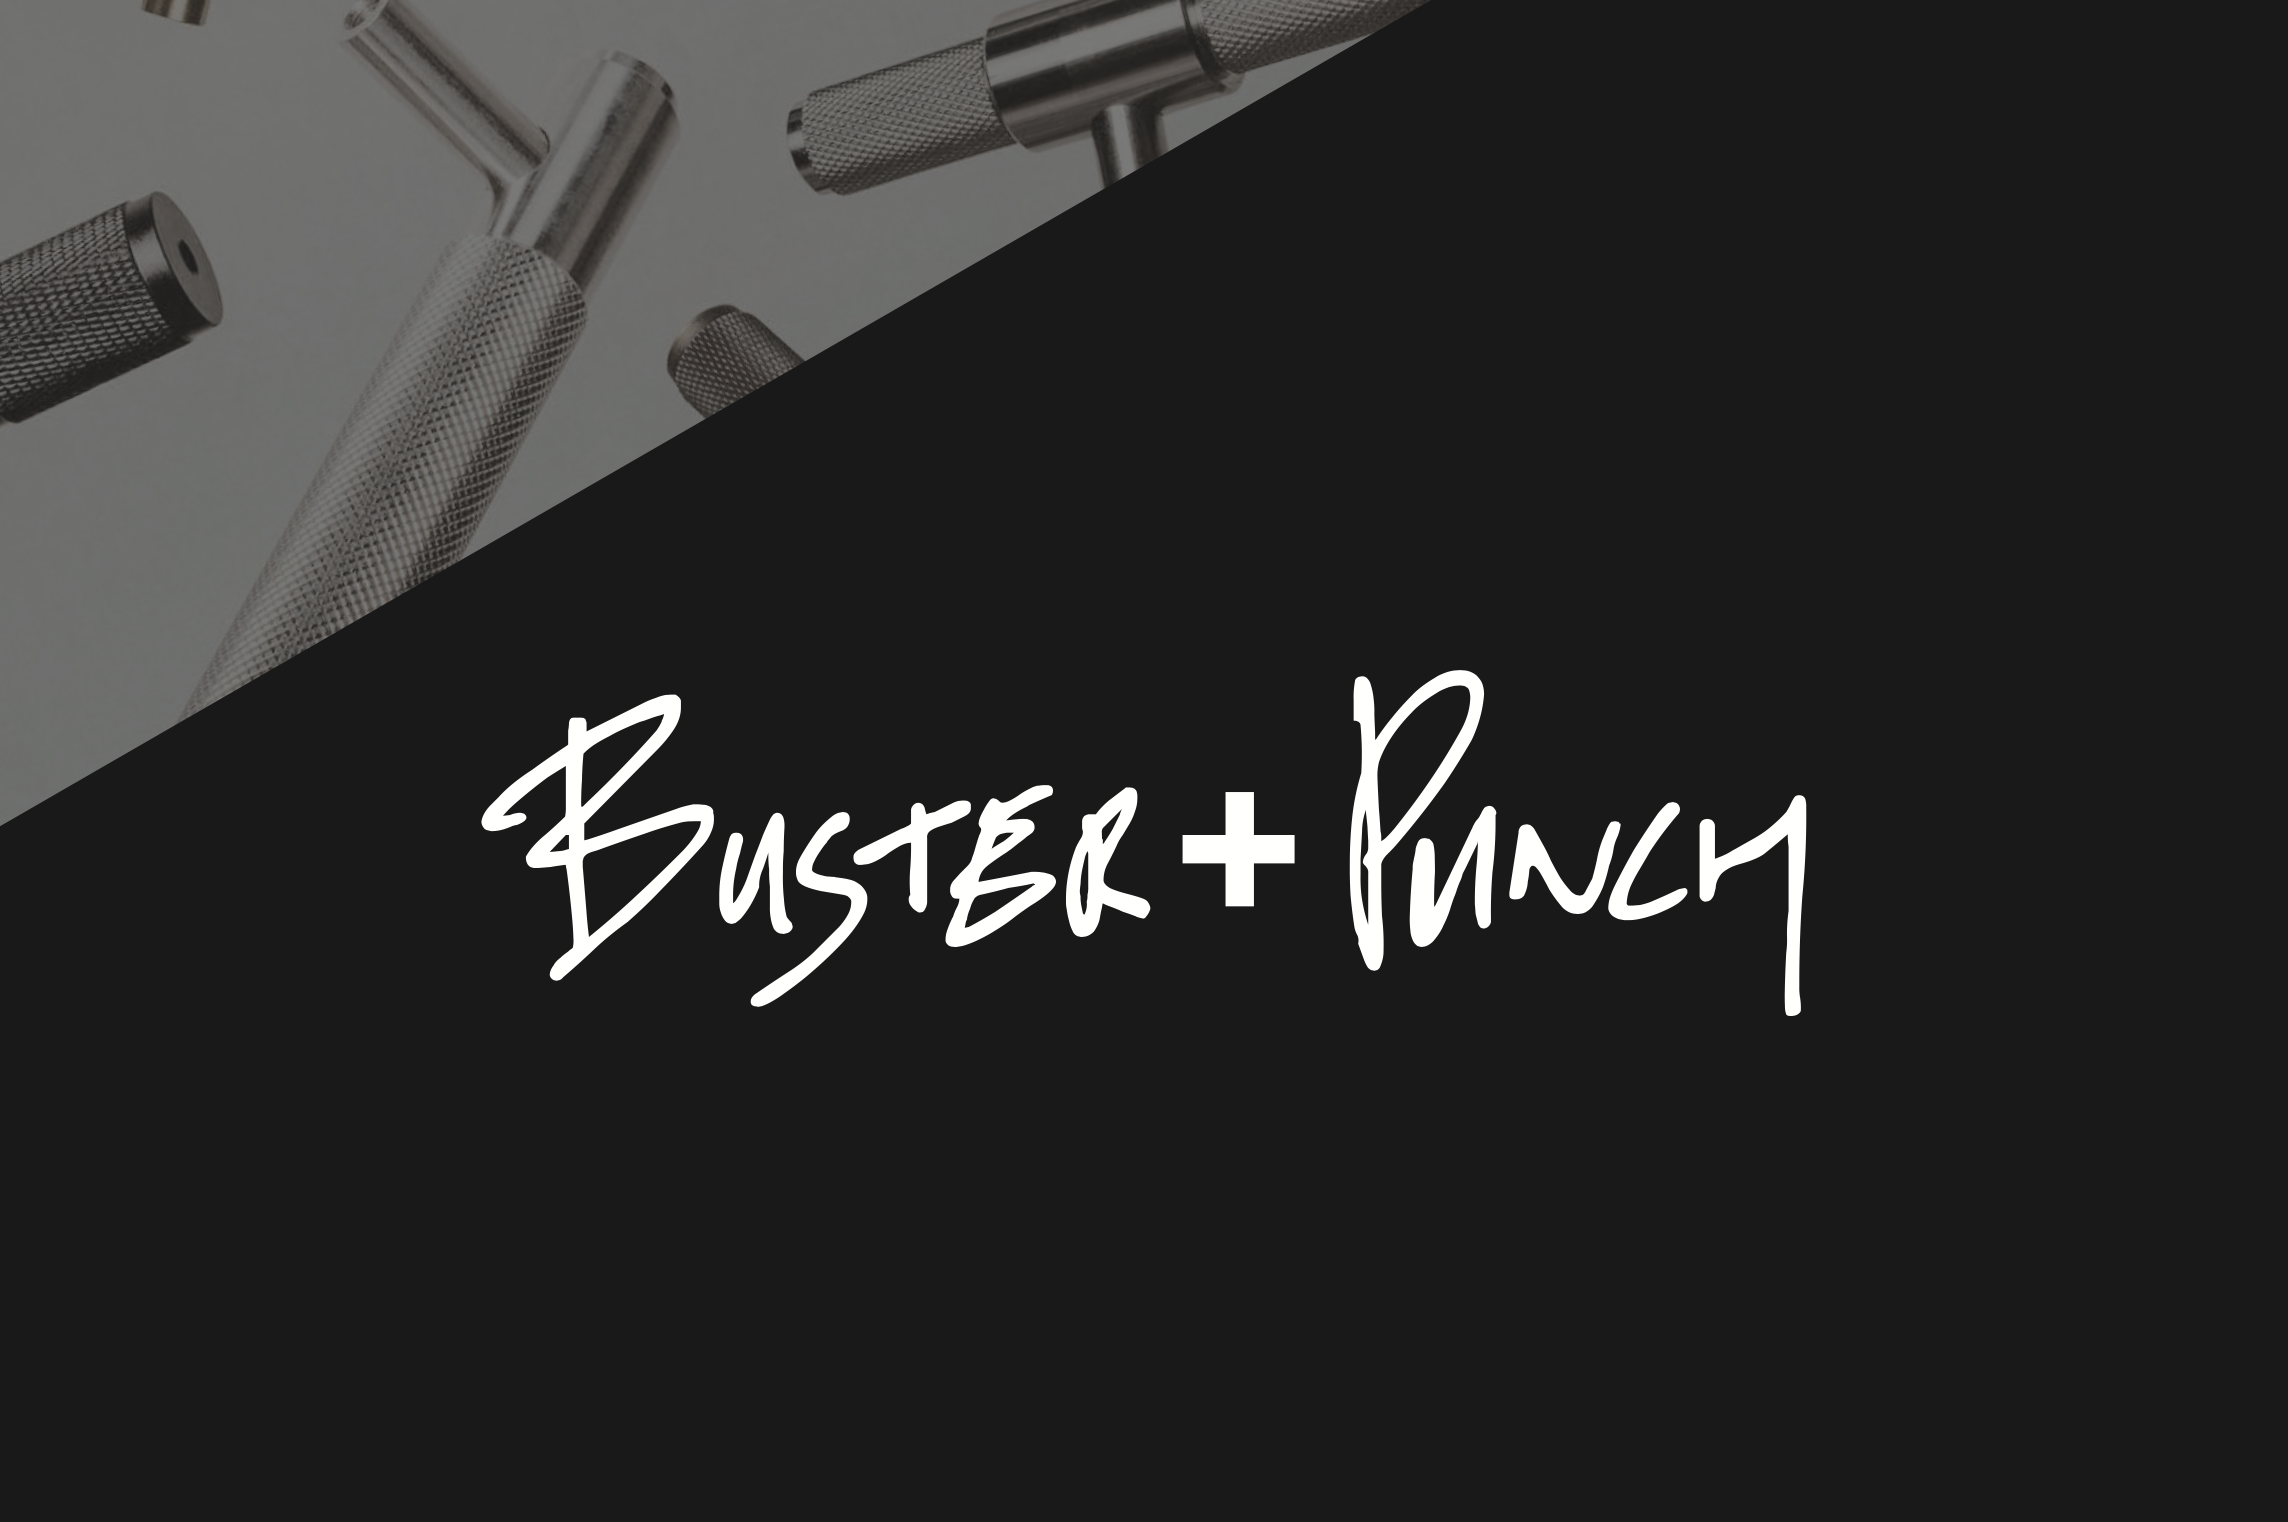 buster punch